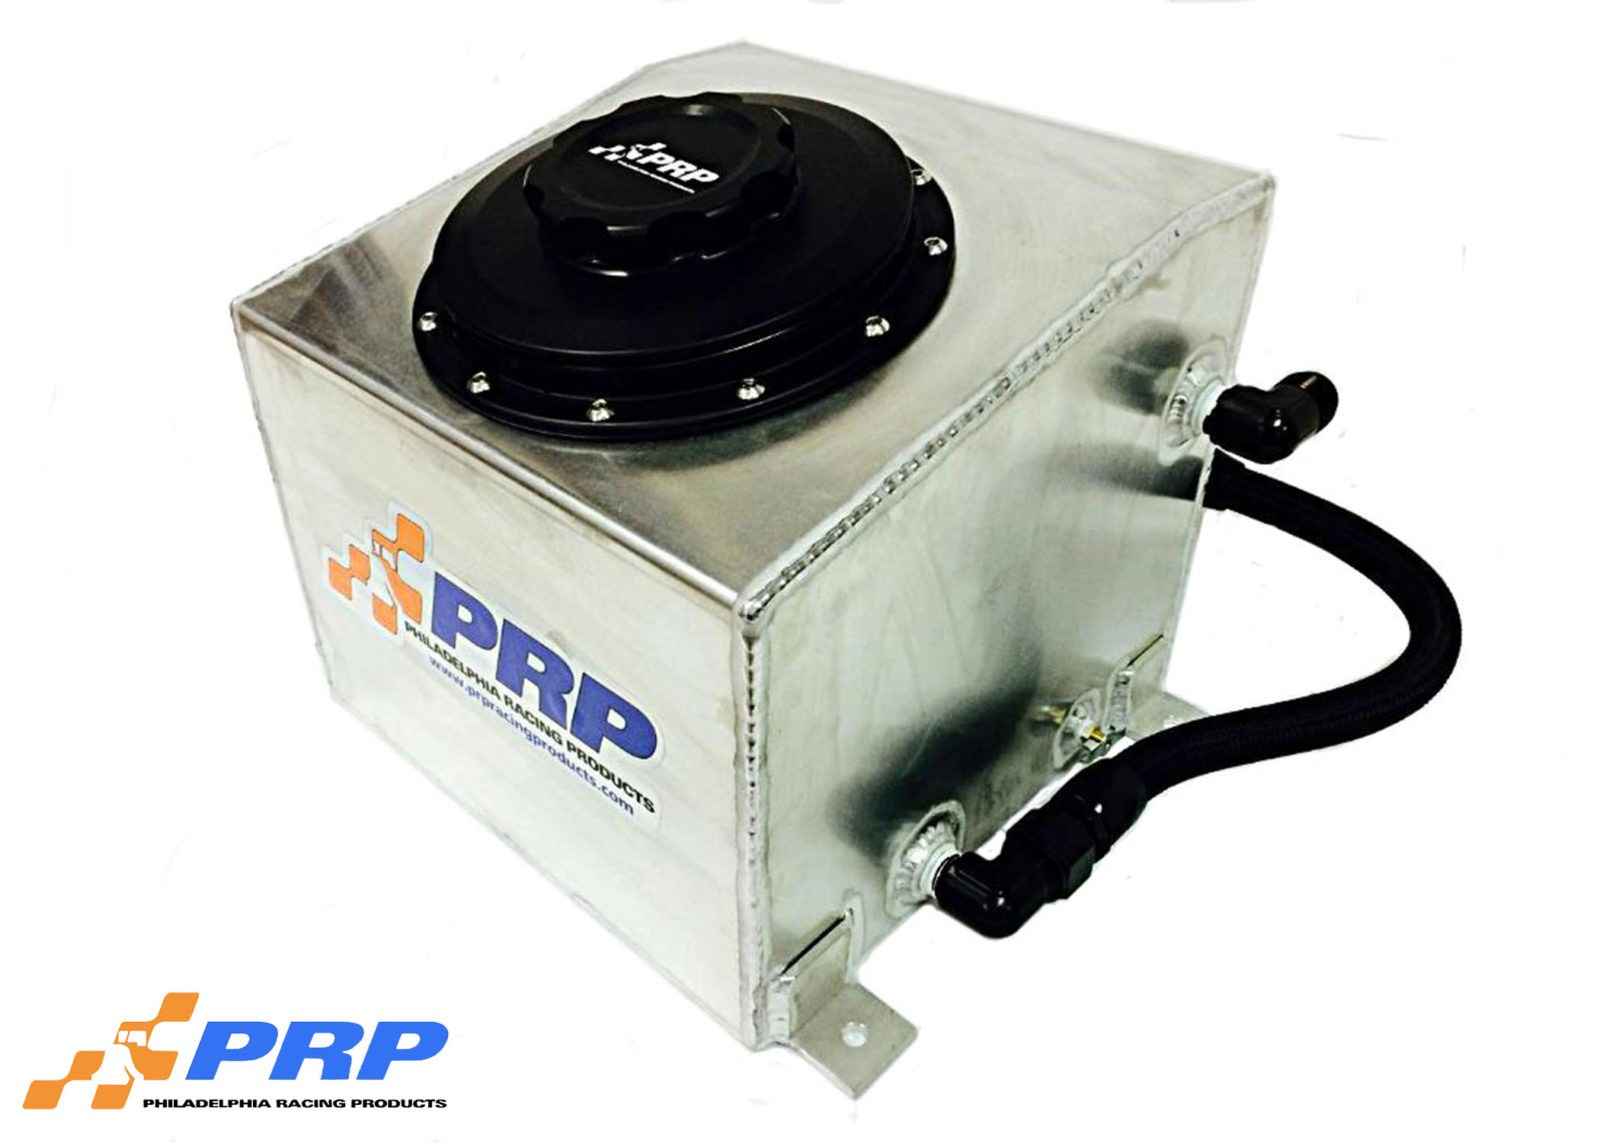 Intercooler tank and plumbing kit made by PRP Racing Products